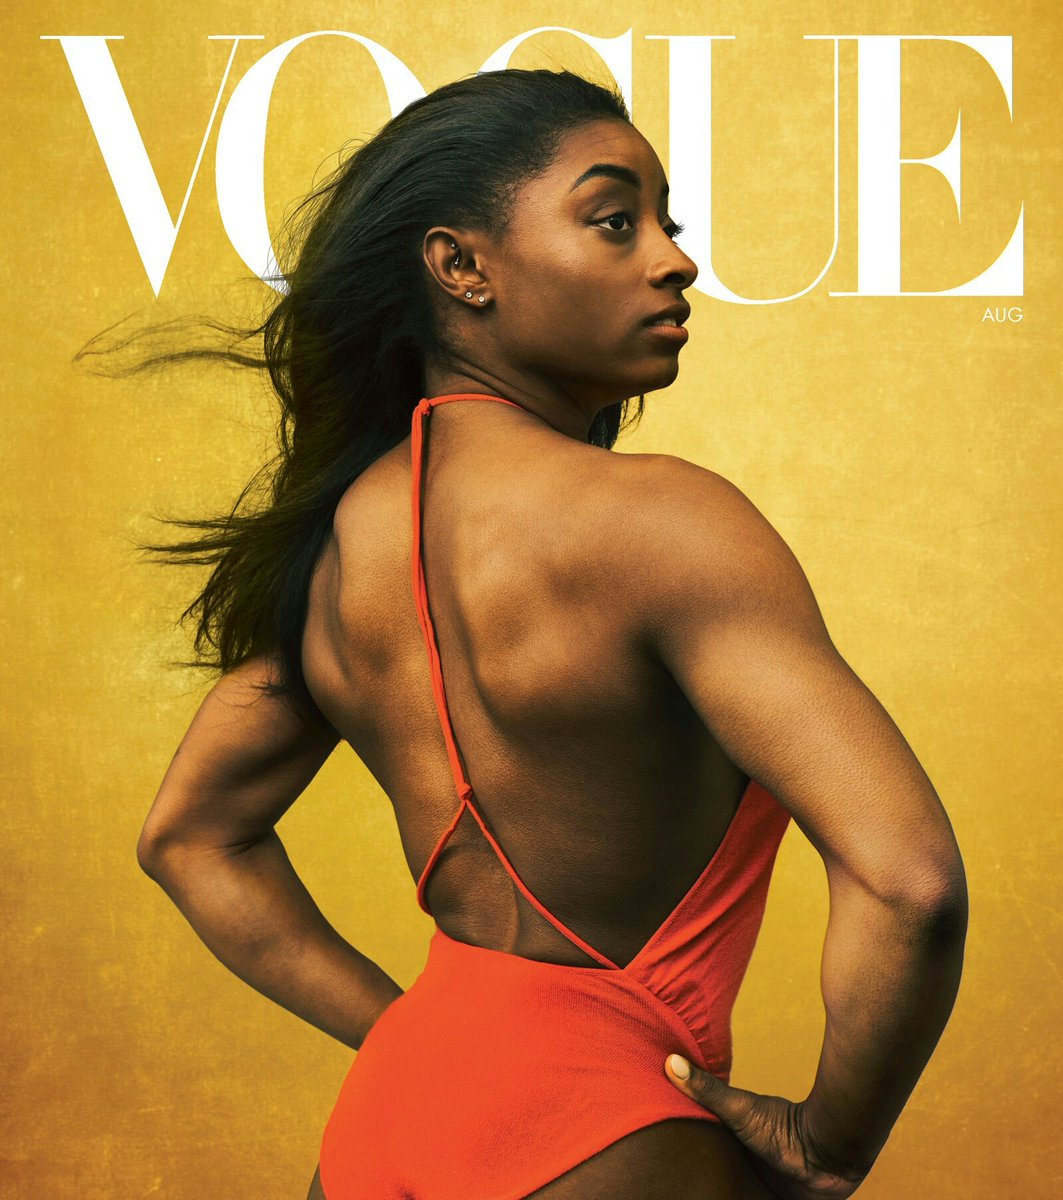 American gymnast Simone Biles. Raised in foster care, kinship care, and later adopted. Biles is the most decorated American gymnast of all time.